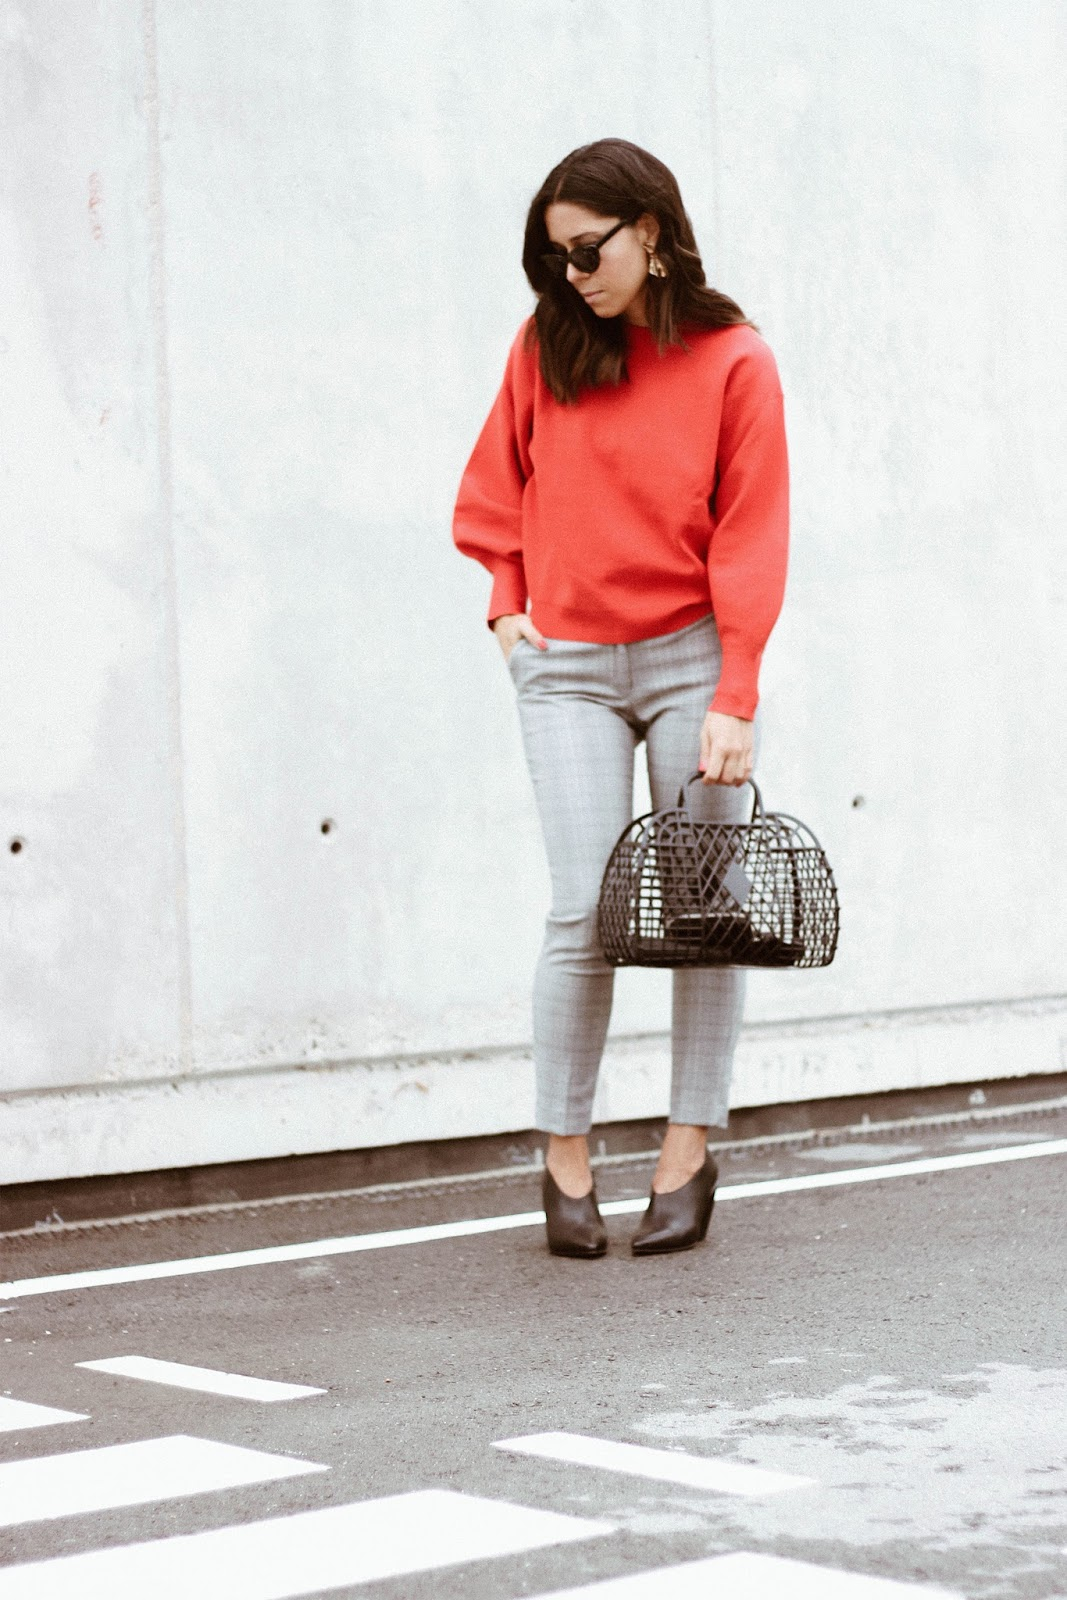 CHECKED TROUSERS OUTFIT LOOK AND JELLY BAG